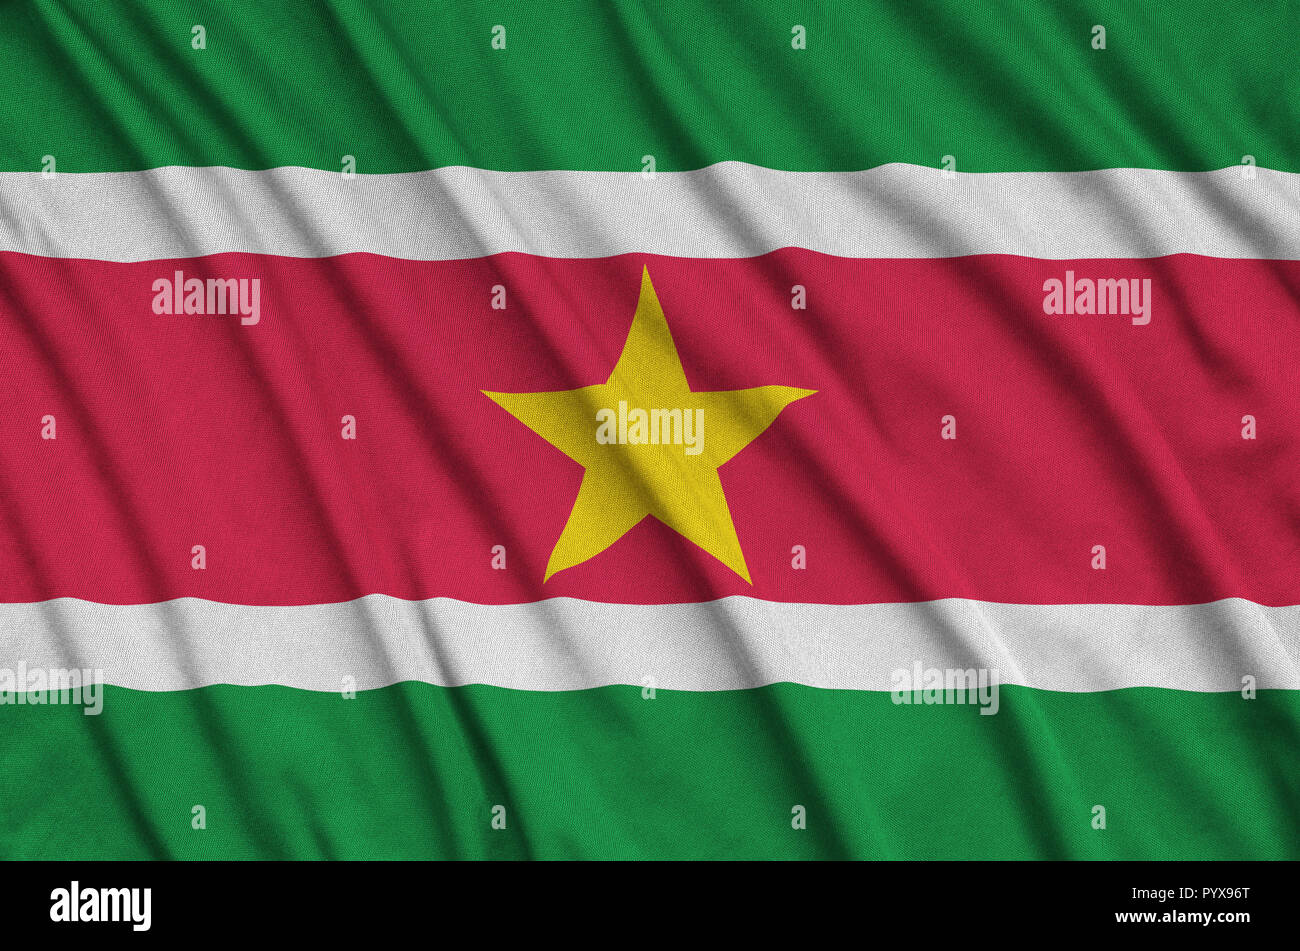 Suriname flag  is depicted on a sports cloth fabric with many folds. Sport team waving banner - Stock Image